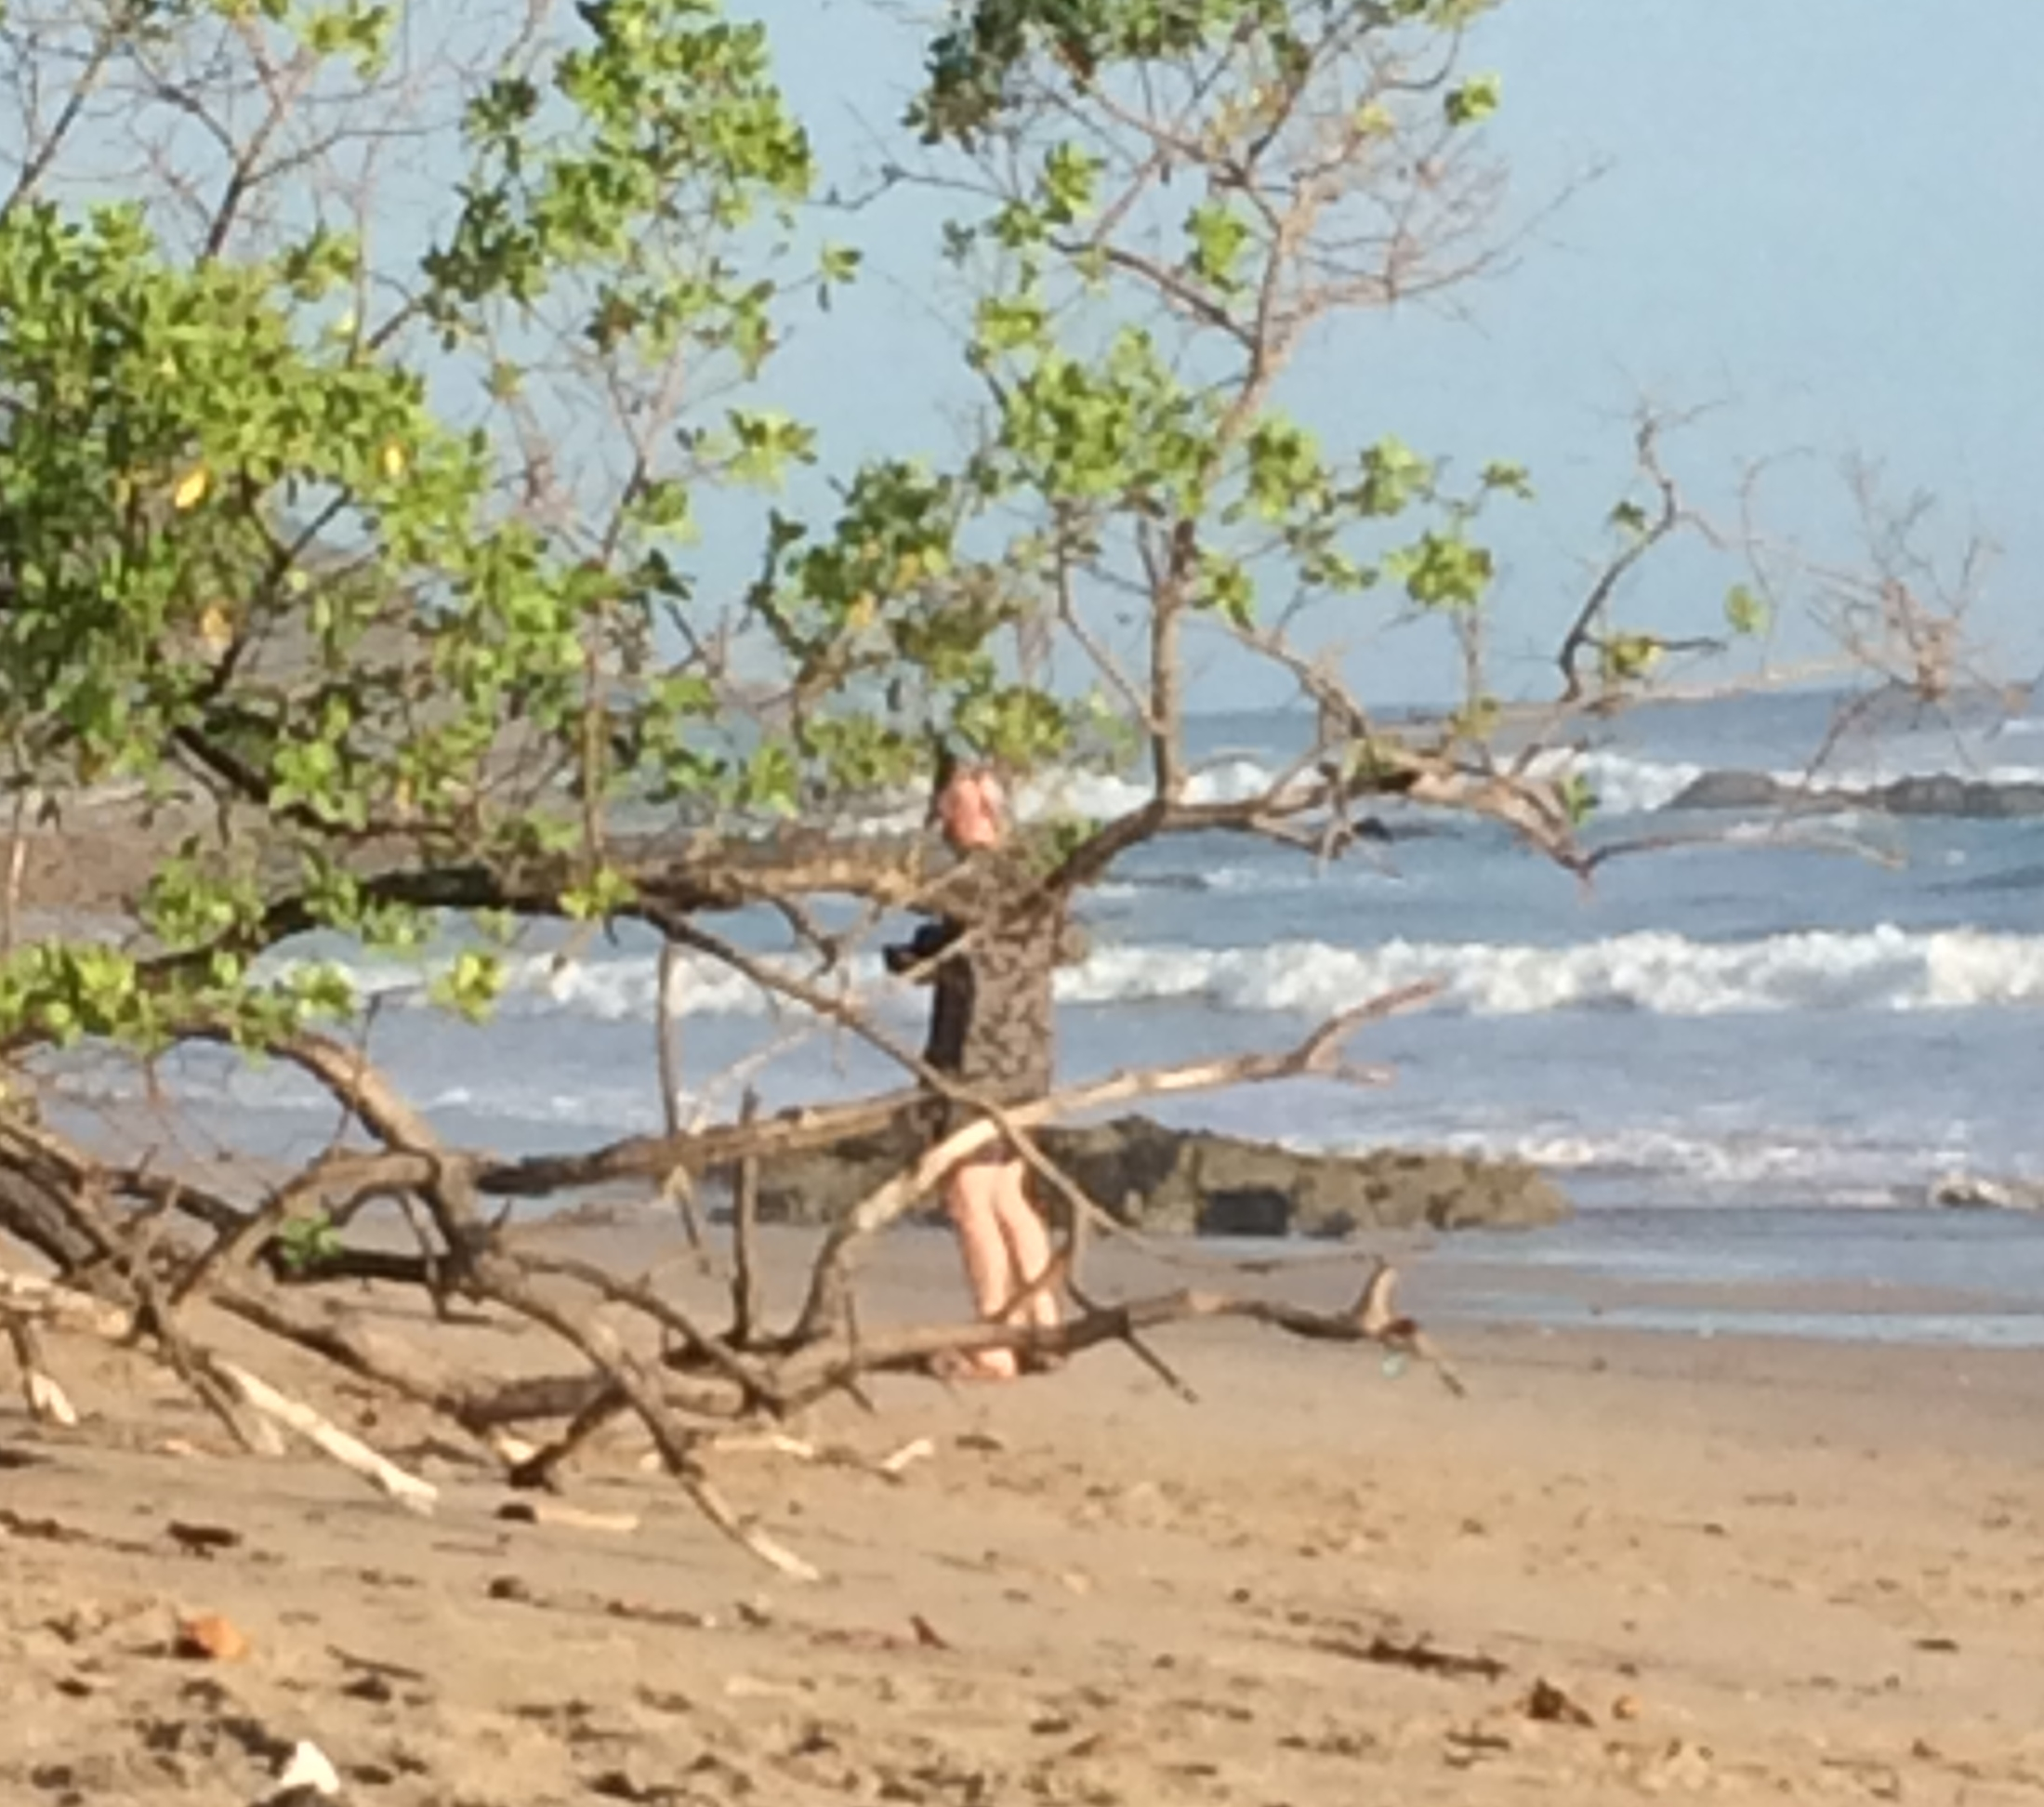 I saw Dave on the beach snapping pics, so I sneaked this creepy photo of him.